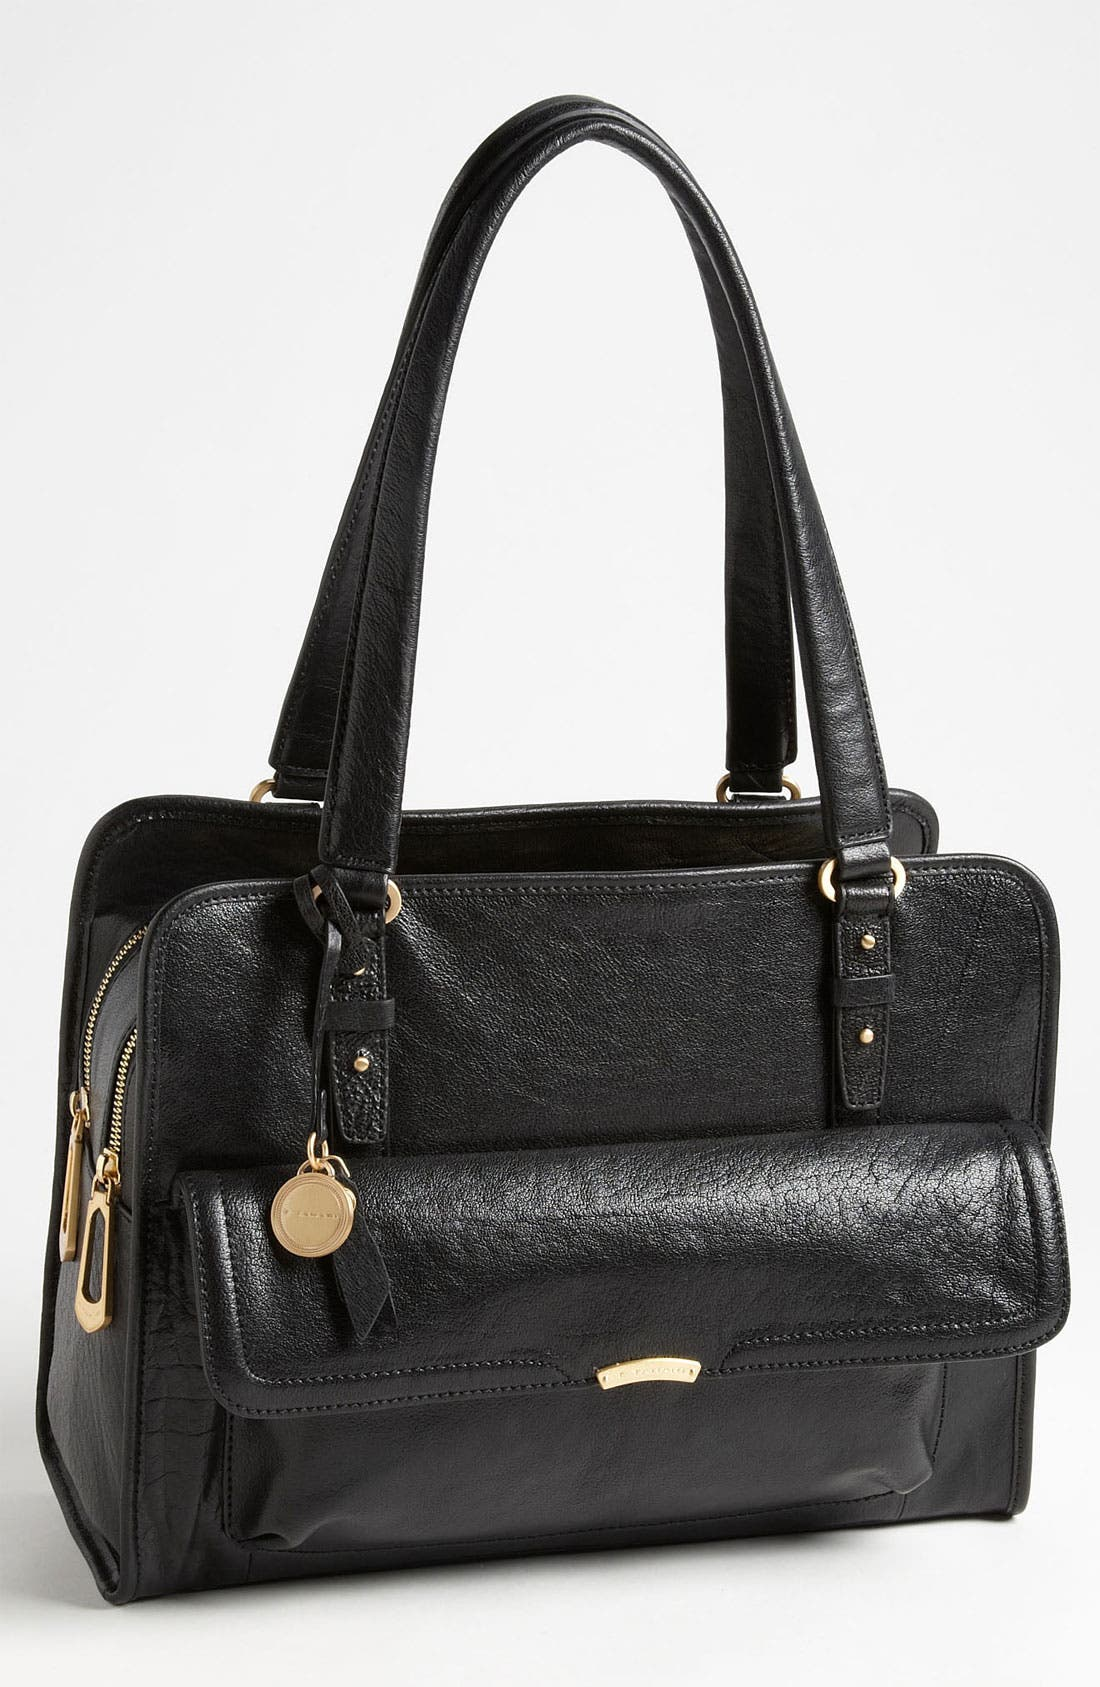 Main Image - T Tahari 'Joy' Double Compartment Shoulder Bag